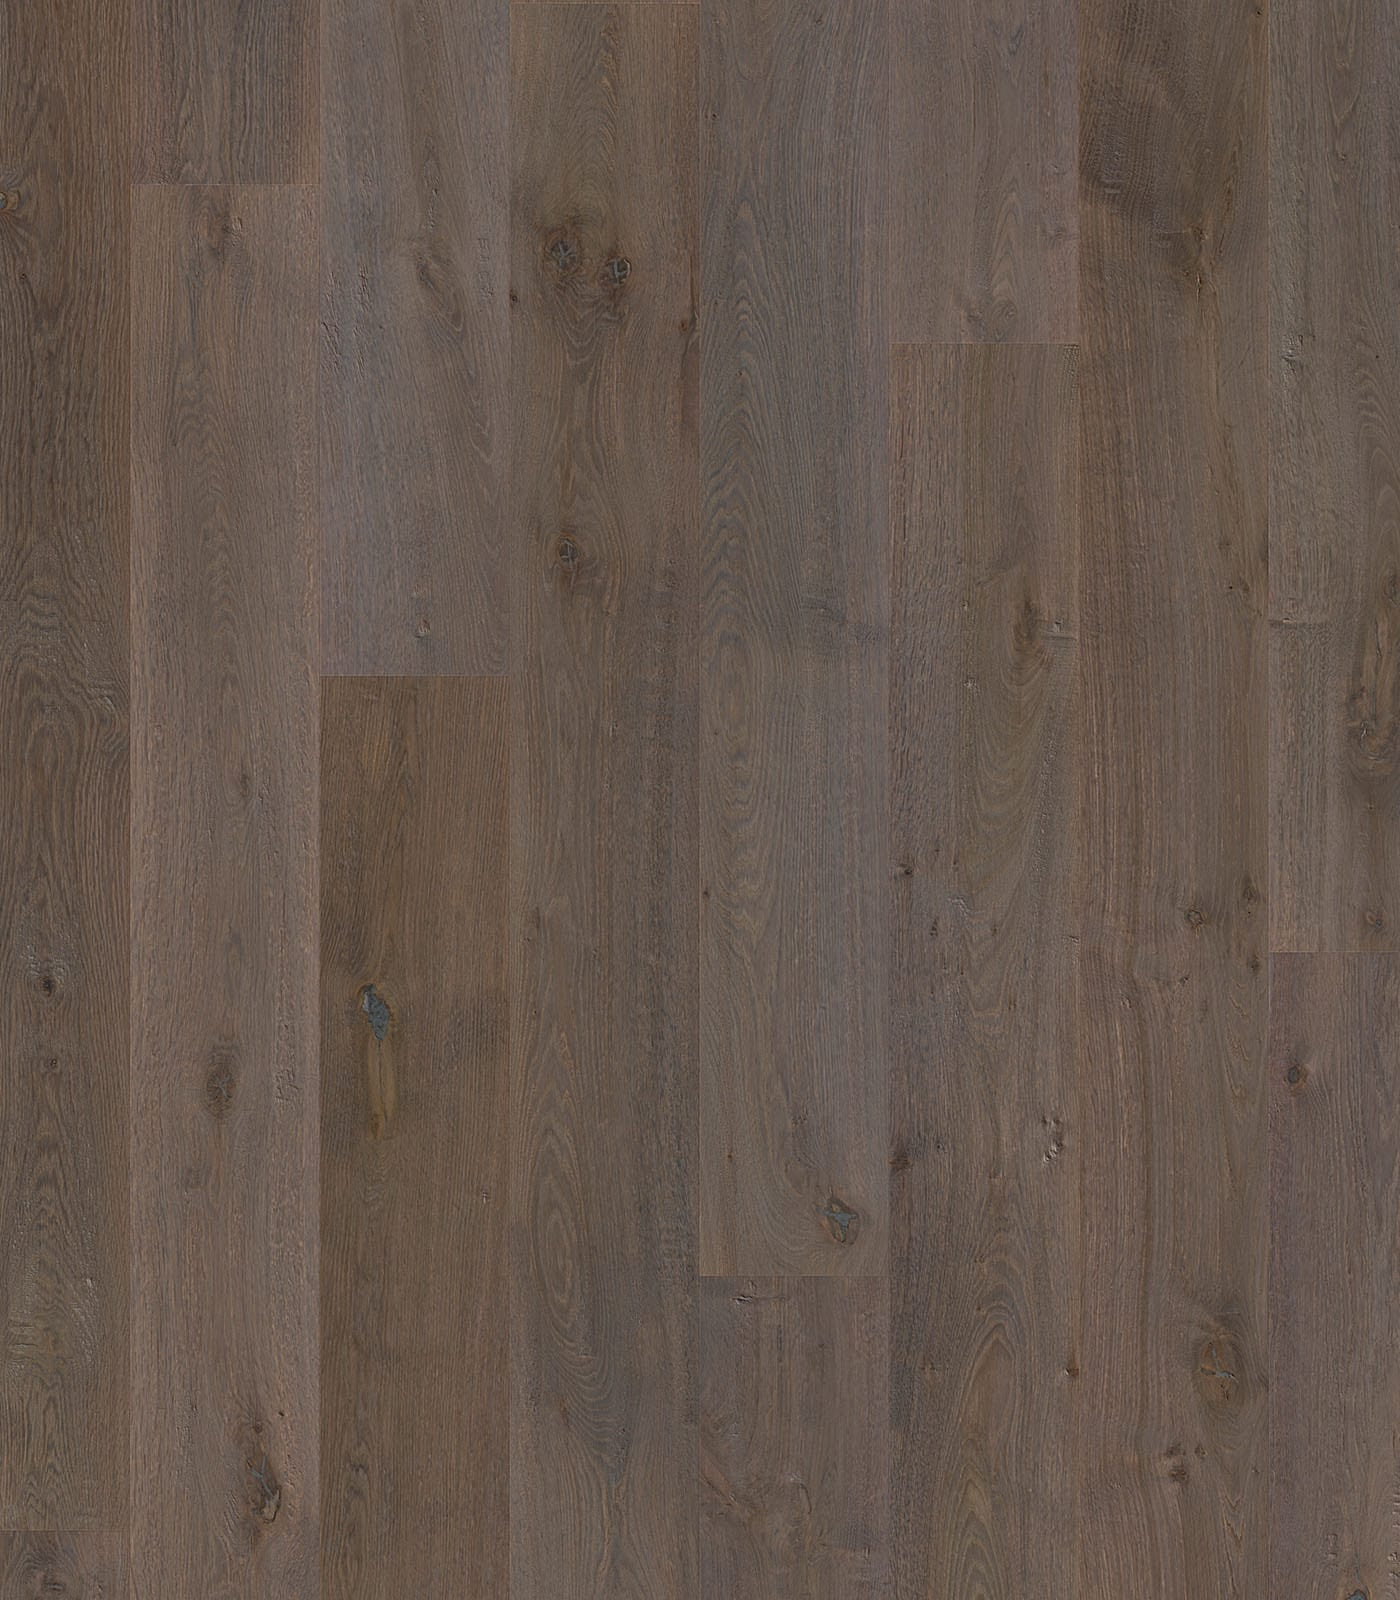 Jackson Hole-Lifestyle Collection-European Oak floors-flat